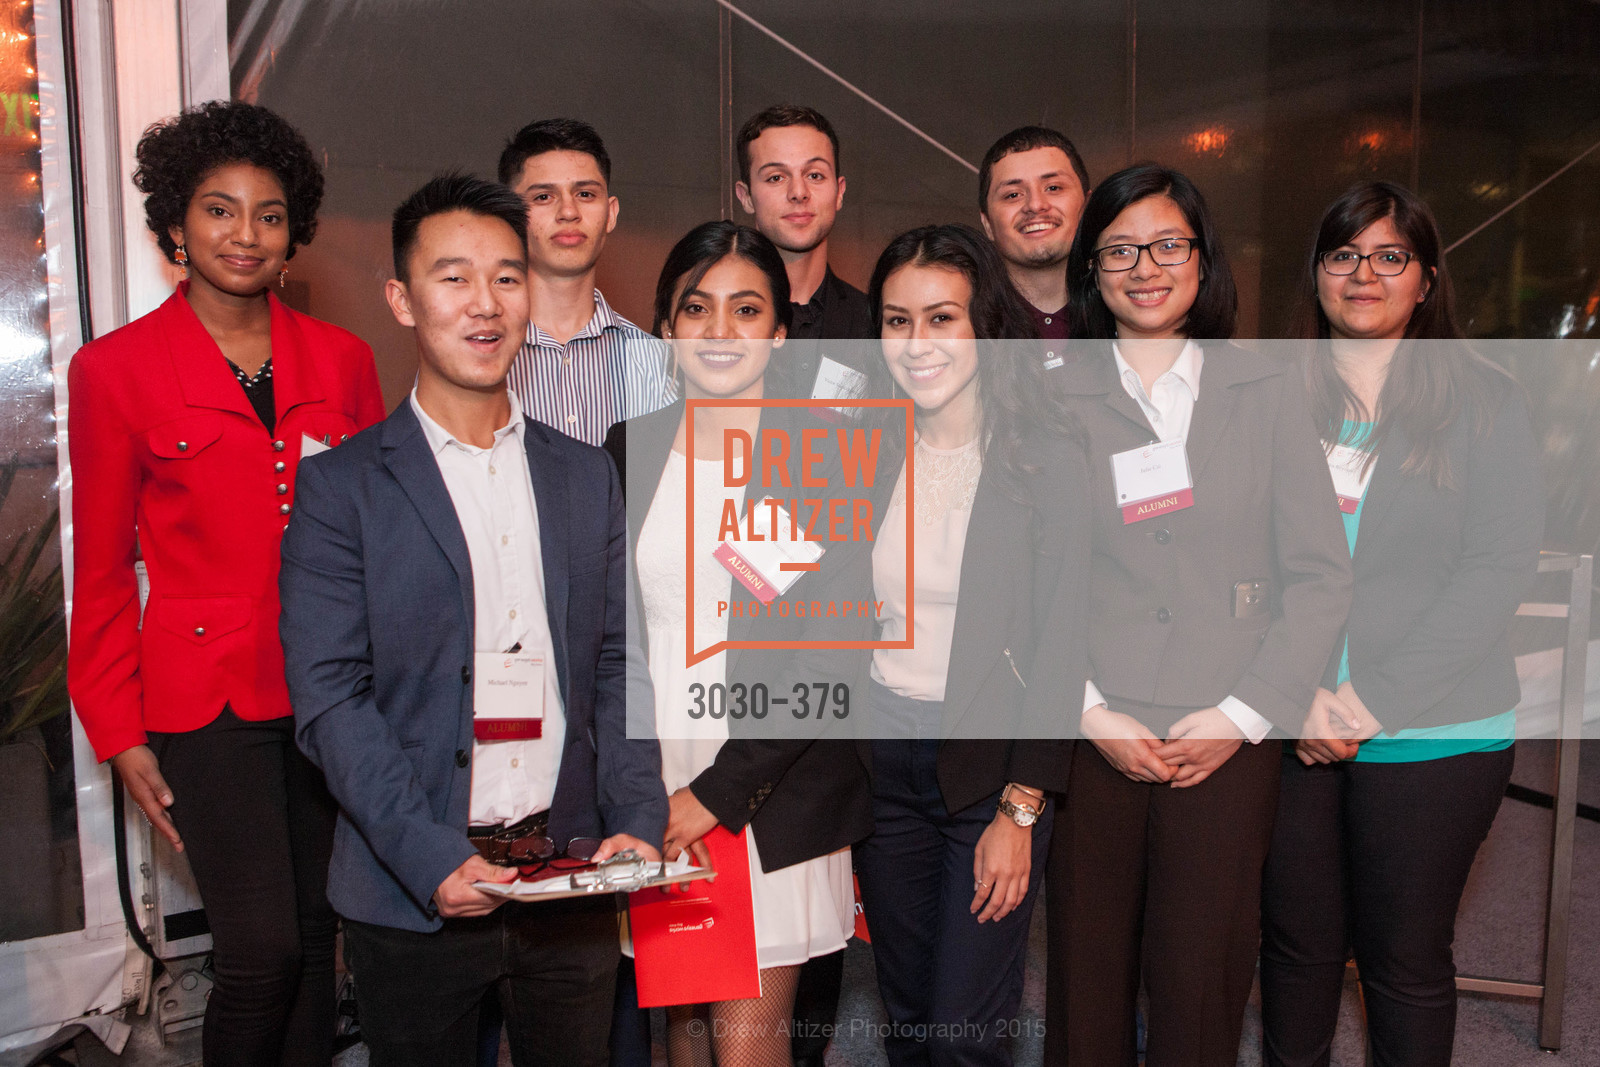 Hannah McKellar, Michael Nguyen, Kateryn Raymundo, Victor Nazlukhanyan, Julie Cai, Genesys Works Bay Area Presents BREAKING THROUGH, St. Regis Hotel. 125 3rd St, October 14th, 2015,Drew Altizer, Drew Altizer Photography, full-service agency, private events, San Francisco photographer, photographer california